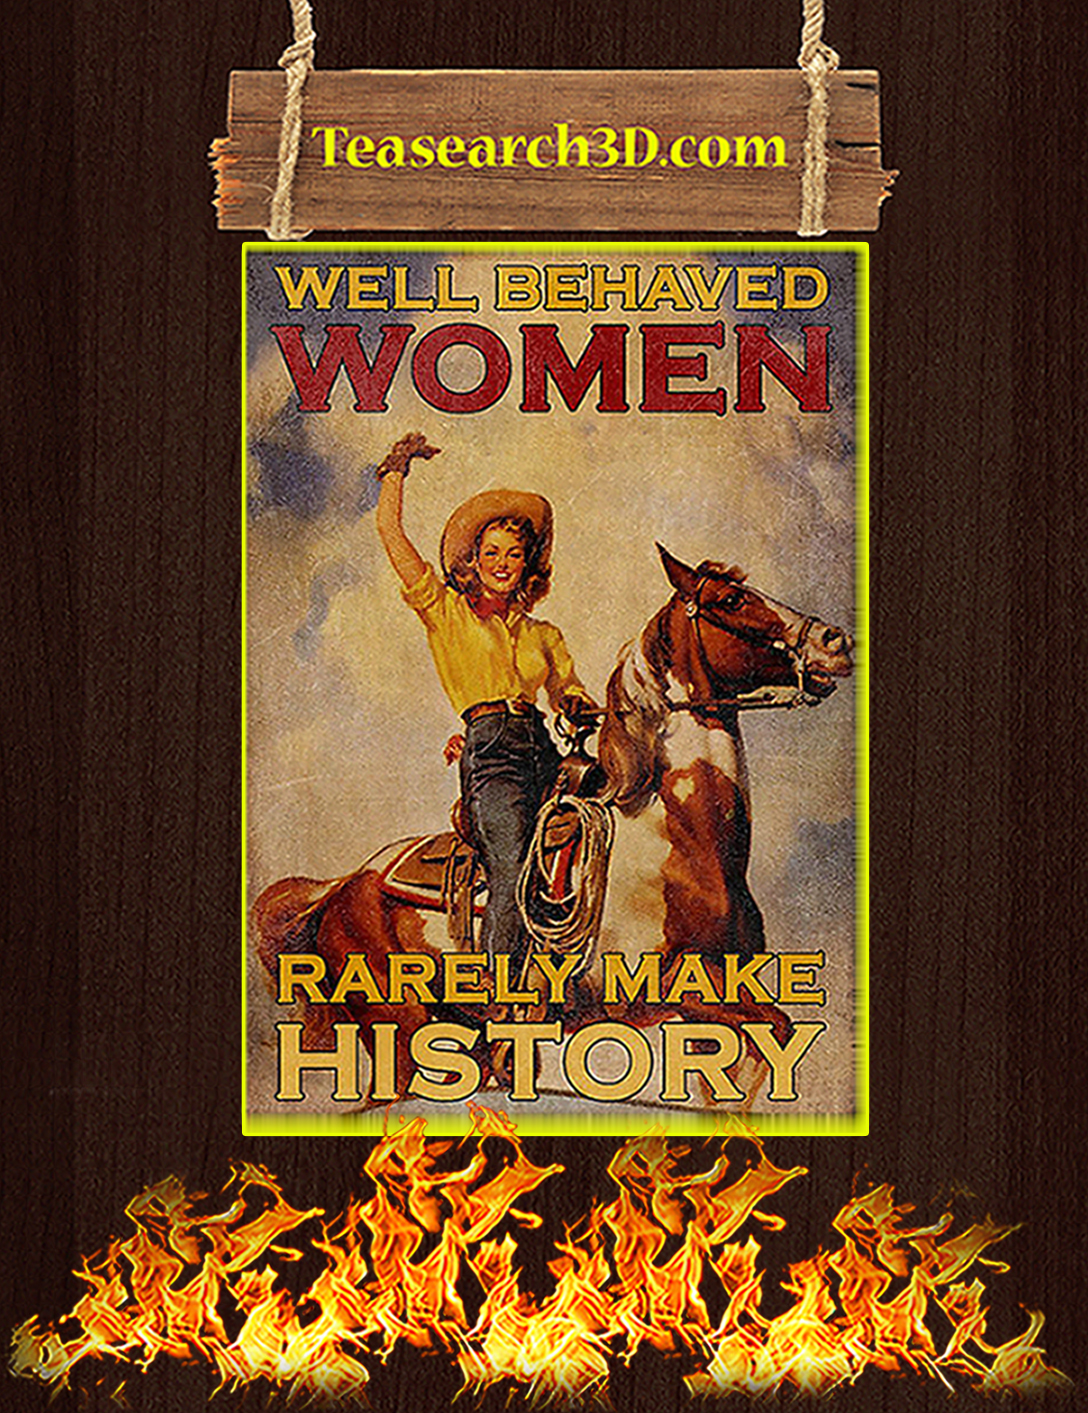 Horse women well behave women rarely make history poster A2